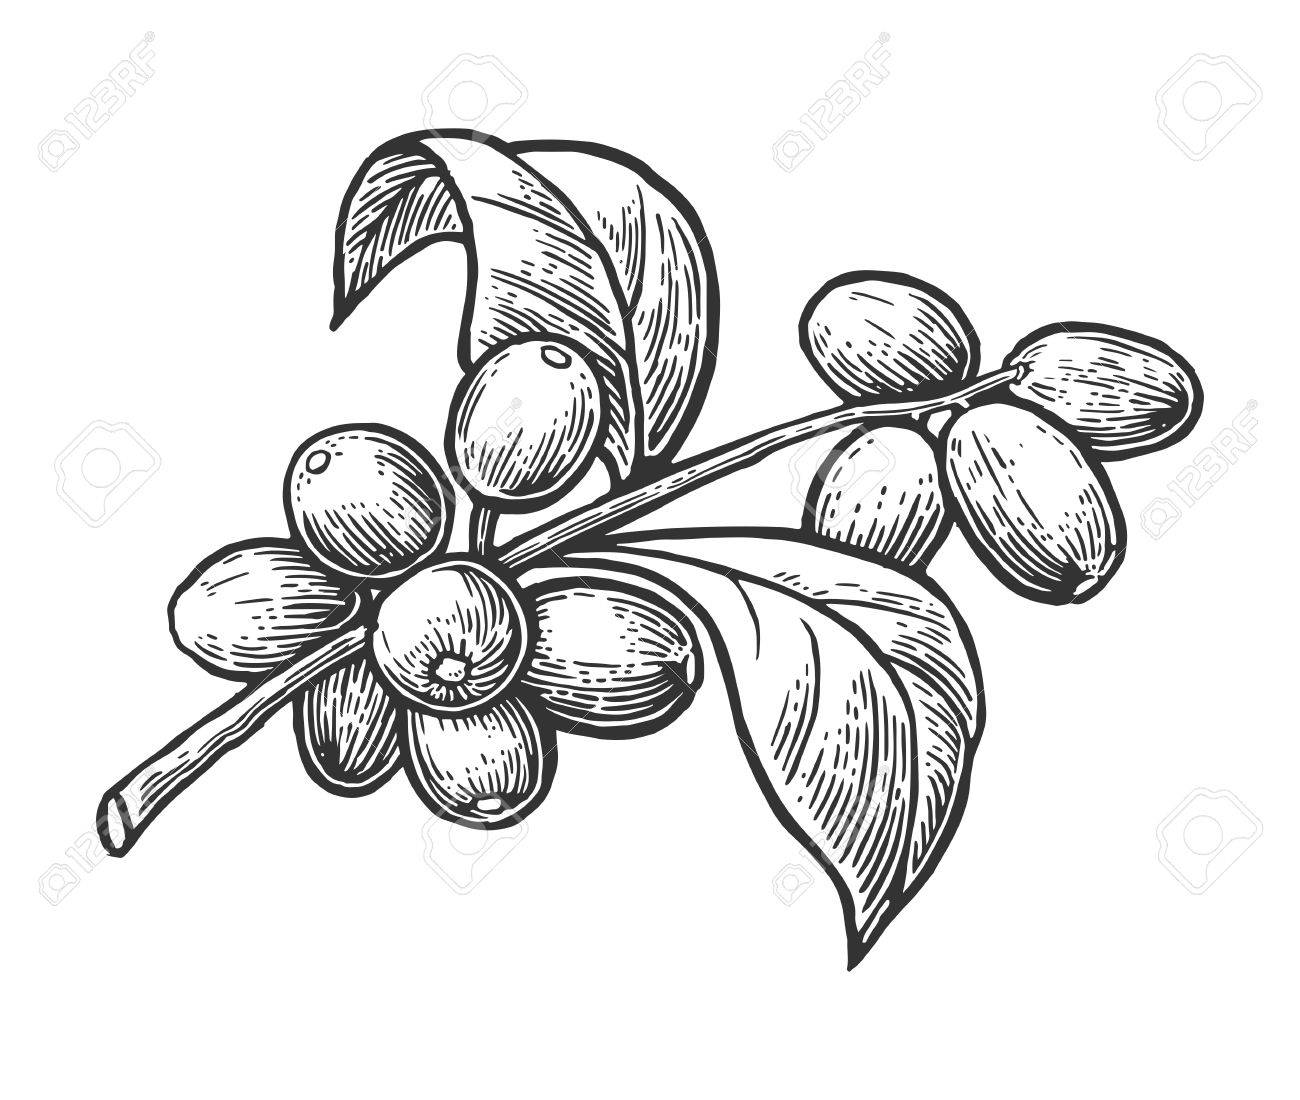 Coffee branch with leaf and berry. Hand drawn vector vintage engraving illustration on white background. - 56220805